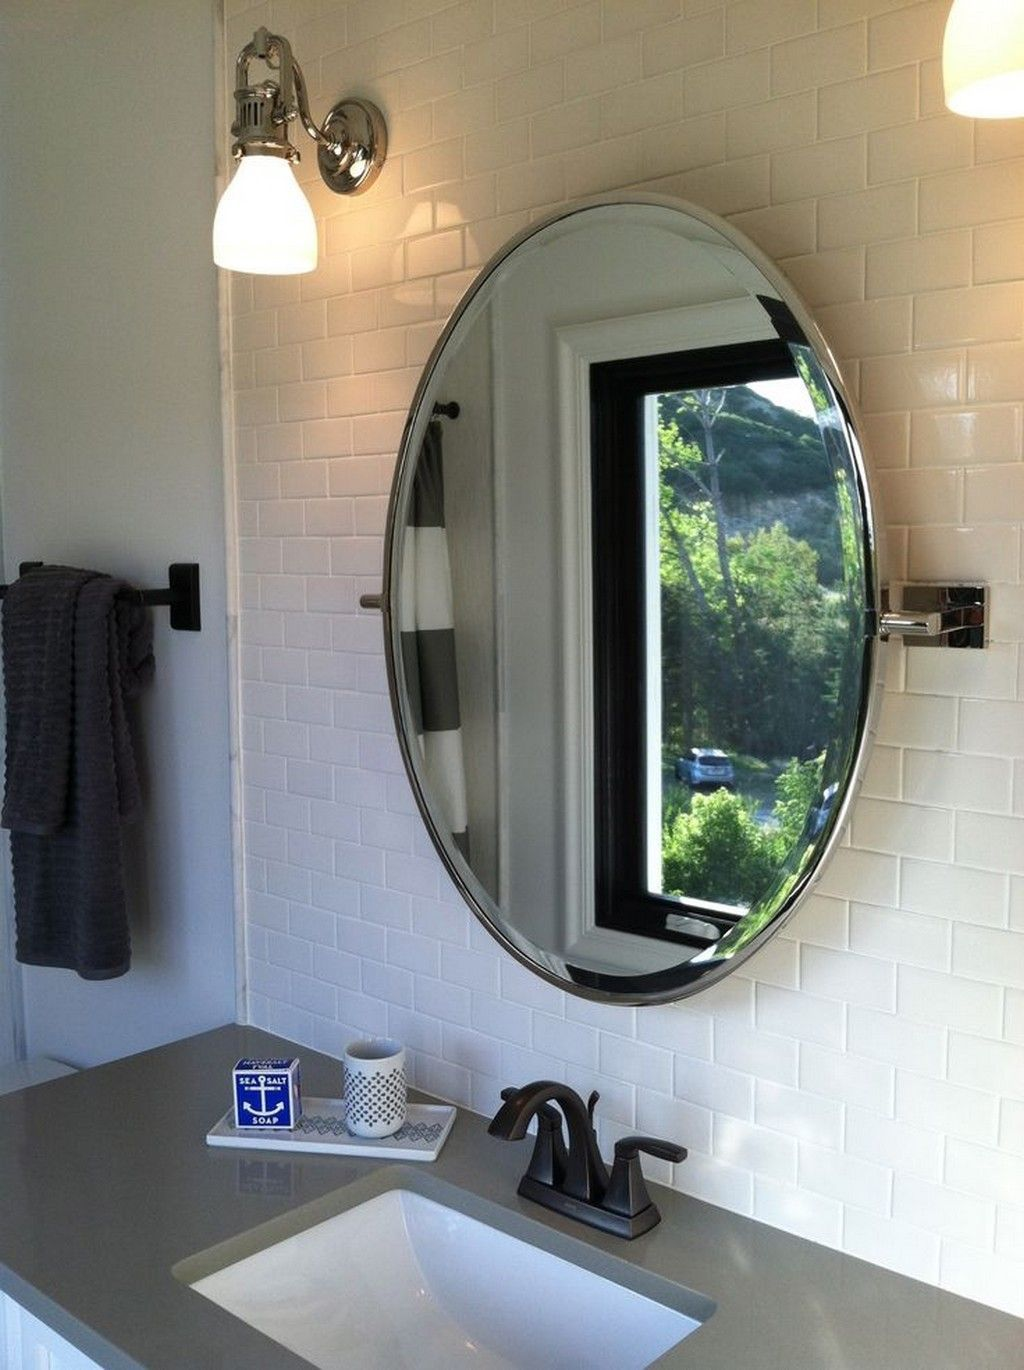 Awesome Bathroom Design Ideas With Unique Lighting Above Round Wall Mirrors Bedroomwallmirrorb Round Mirror Bathroom Best Bathroom Designs Bathroom Sink Decor